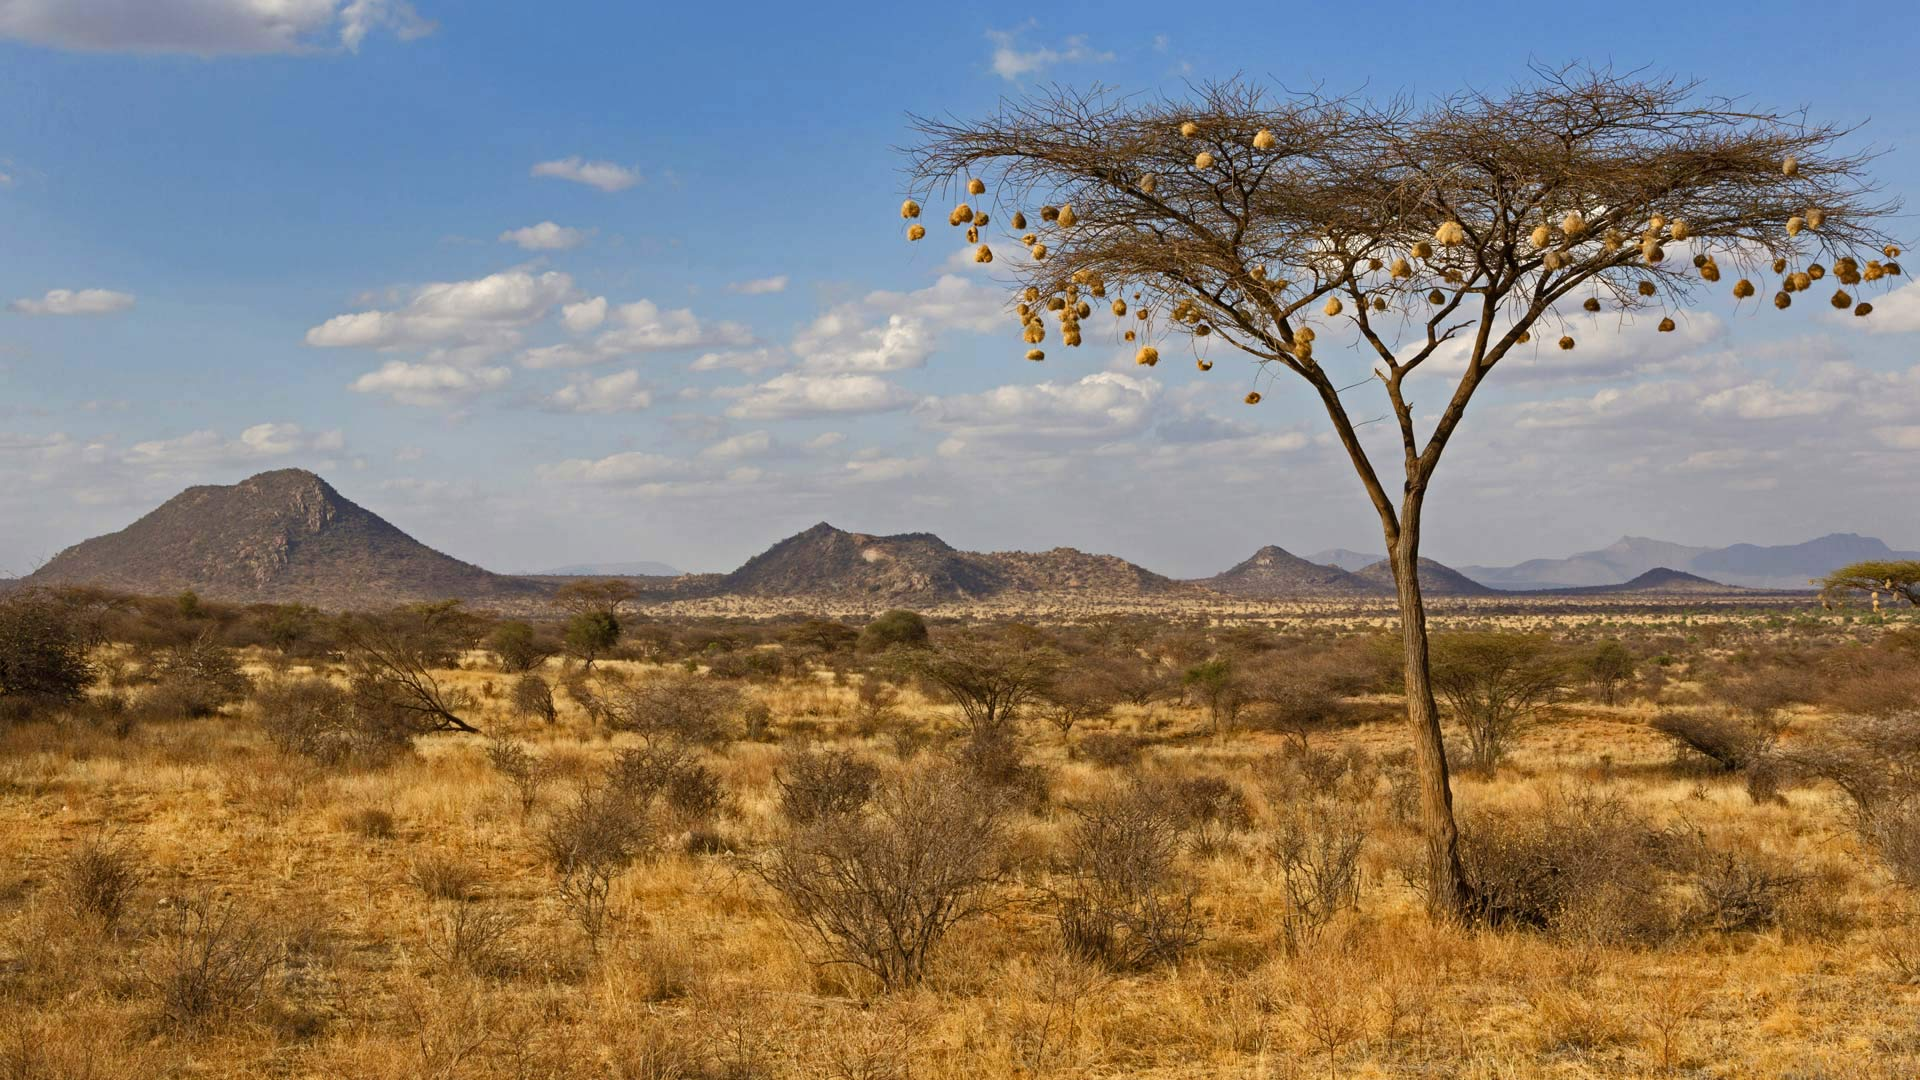 Weaverbird nests hanging from acacia tree in Samburu National Reserve, Kenya (© Bernd Rohrschneider/Minden Pictures)